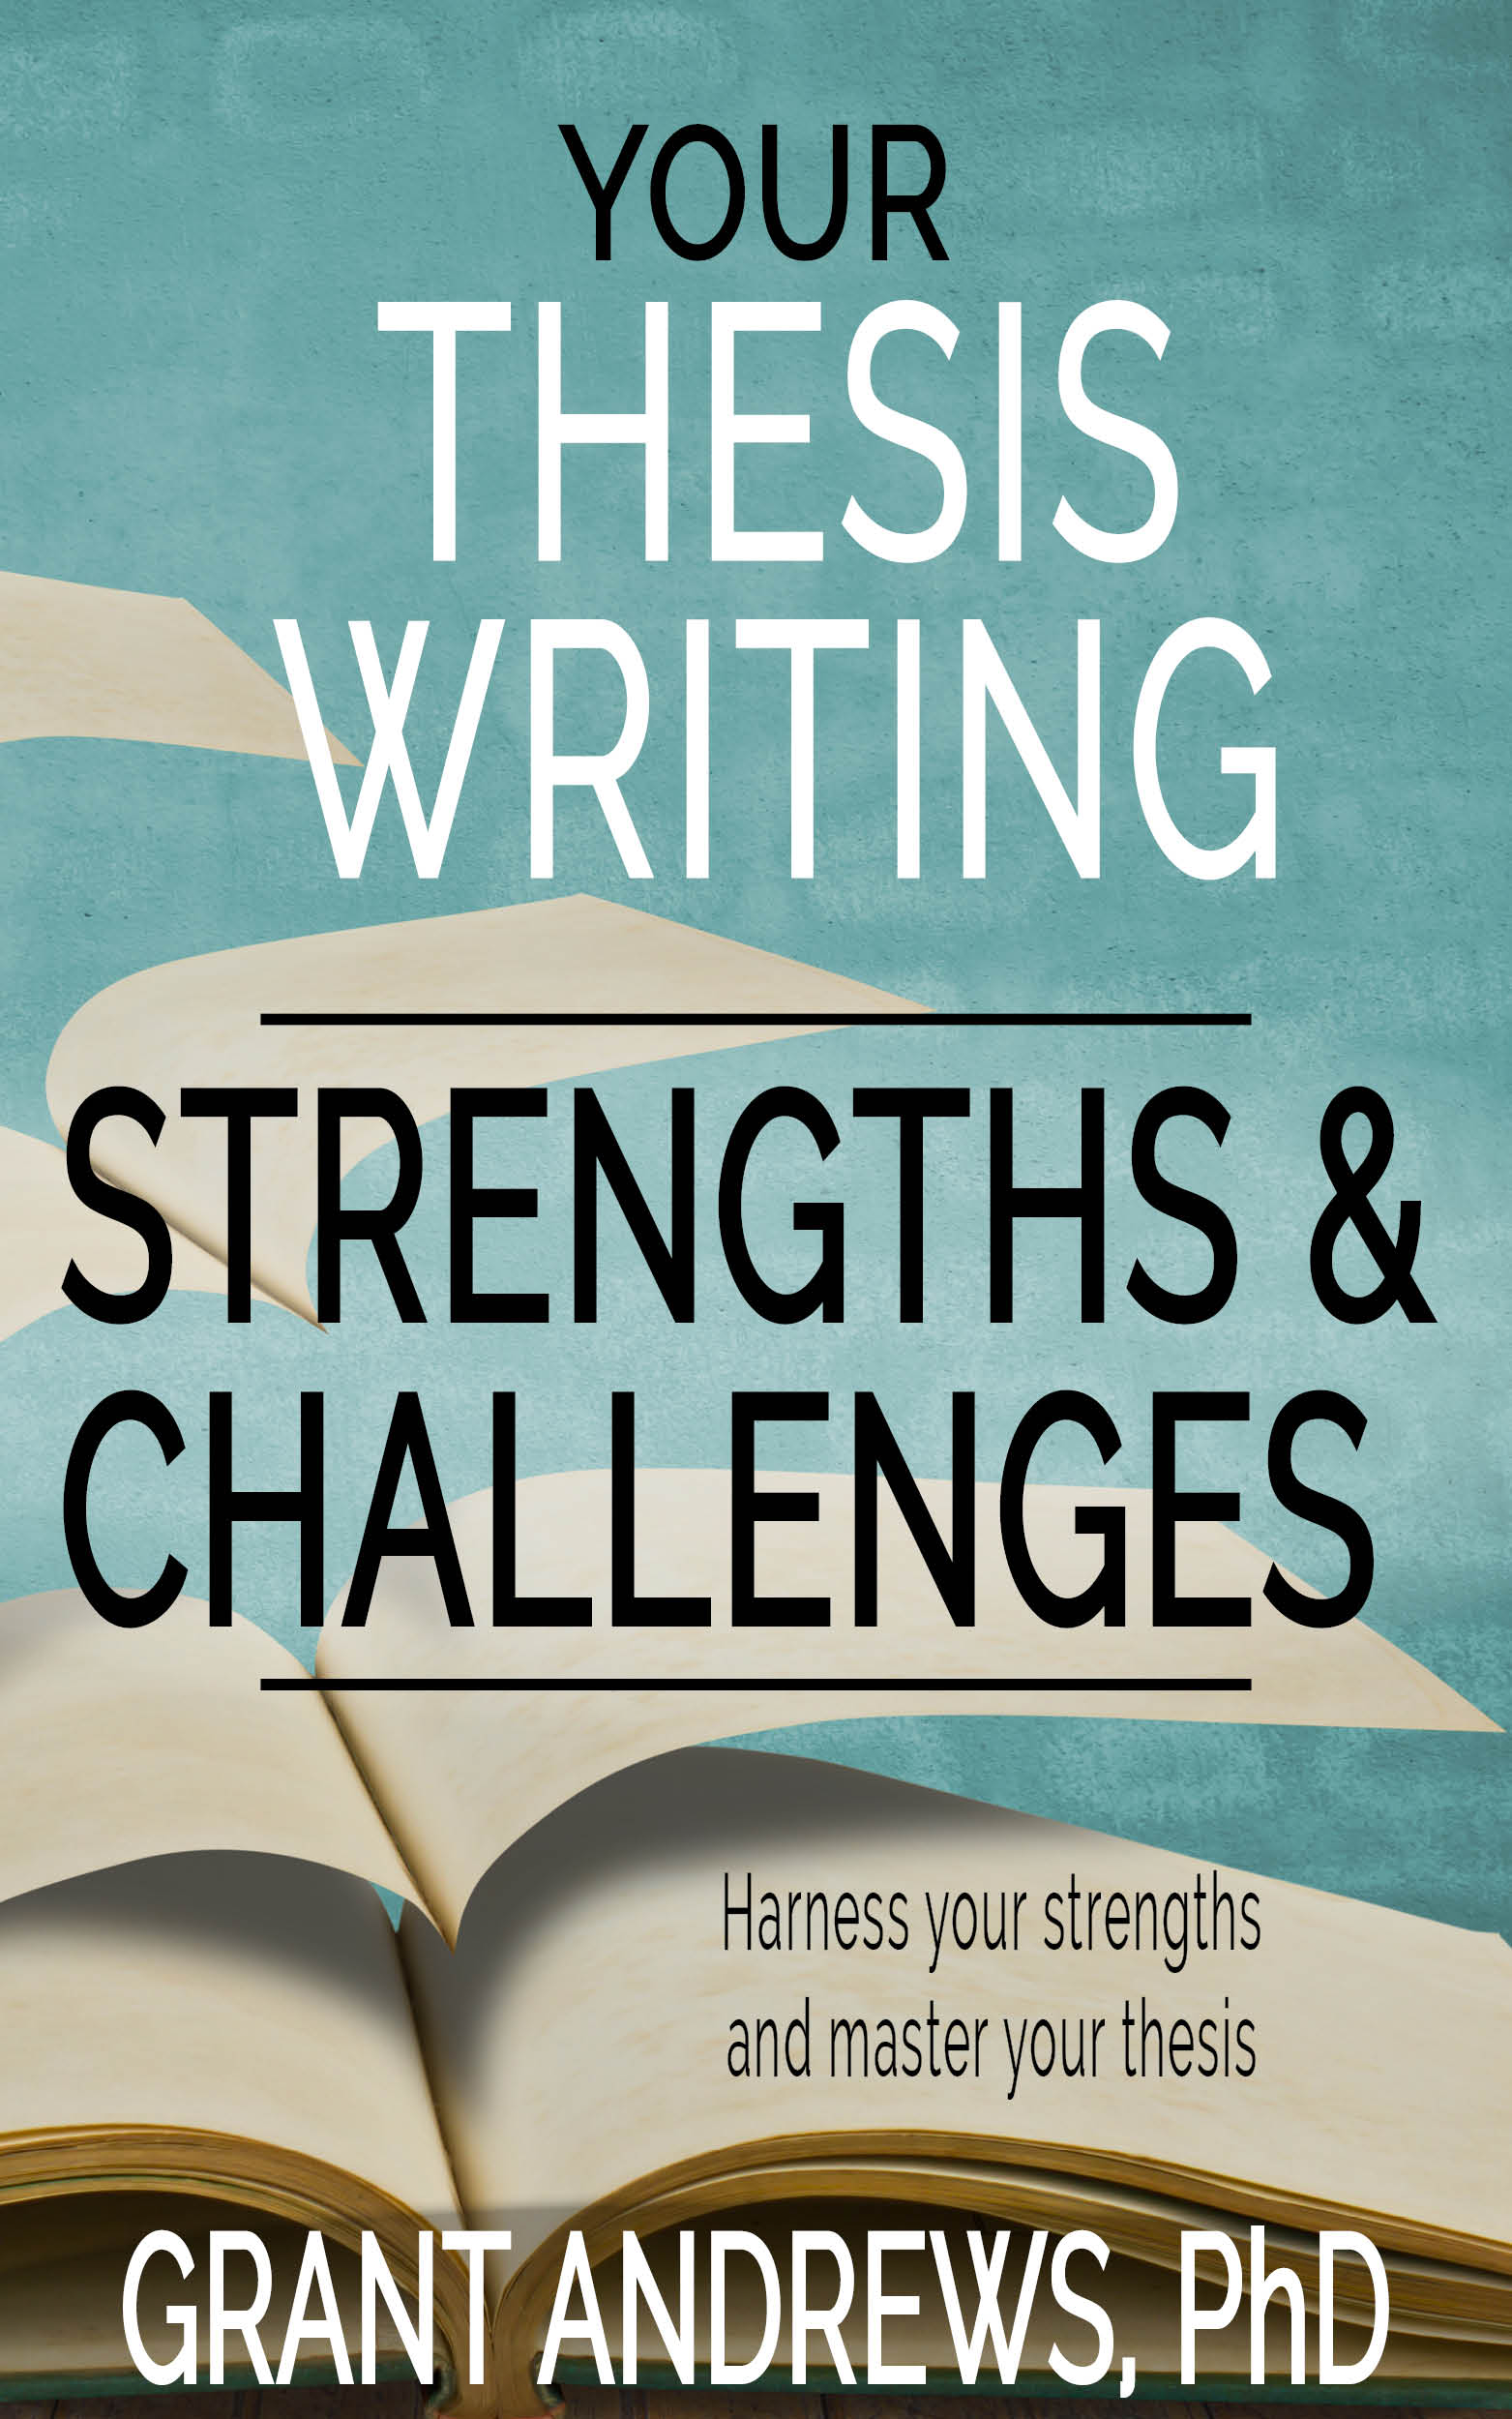 what are the strengths and challenges This article lists 18 challenges writers face and how you can overcome them writers in charge earn your first $1,000  writing challenges: 18 challenges writers face and how to overcome them  i read them for twice, thrice & sometimes more then that every time i read it it gives me strength to continue my work – it doesn't matter if.